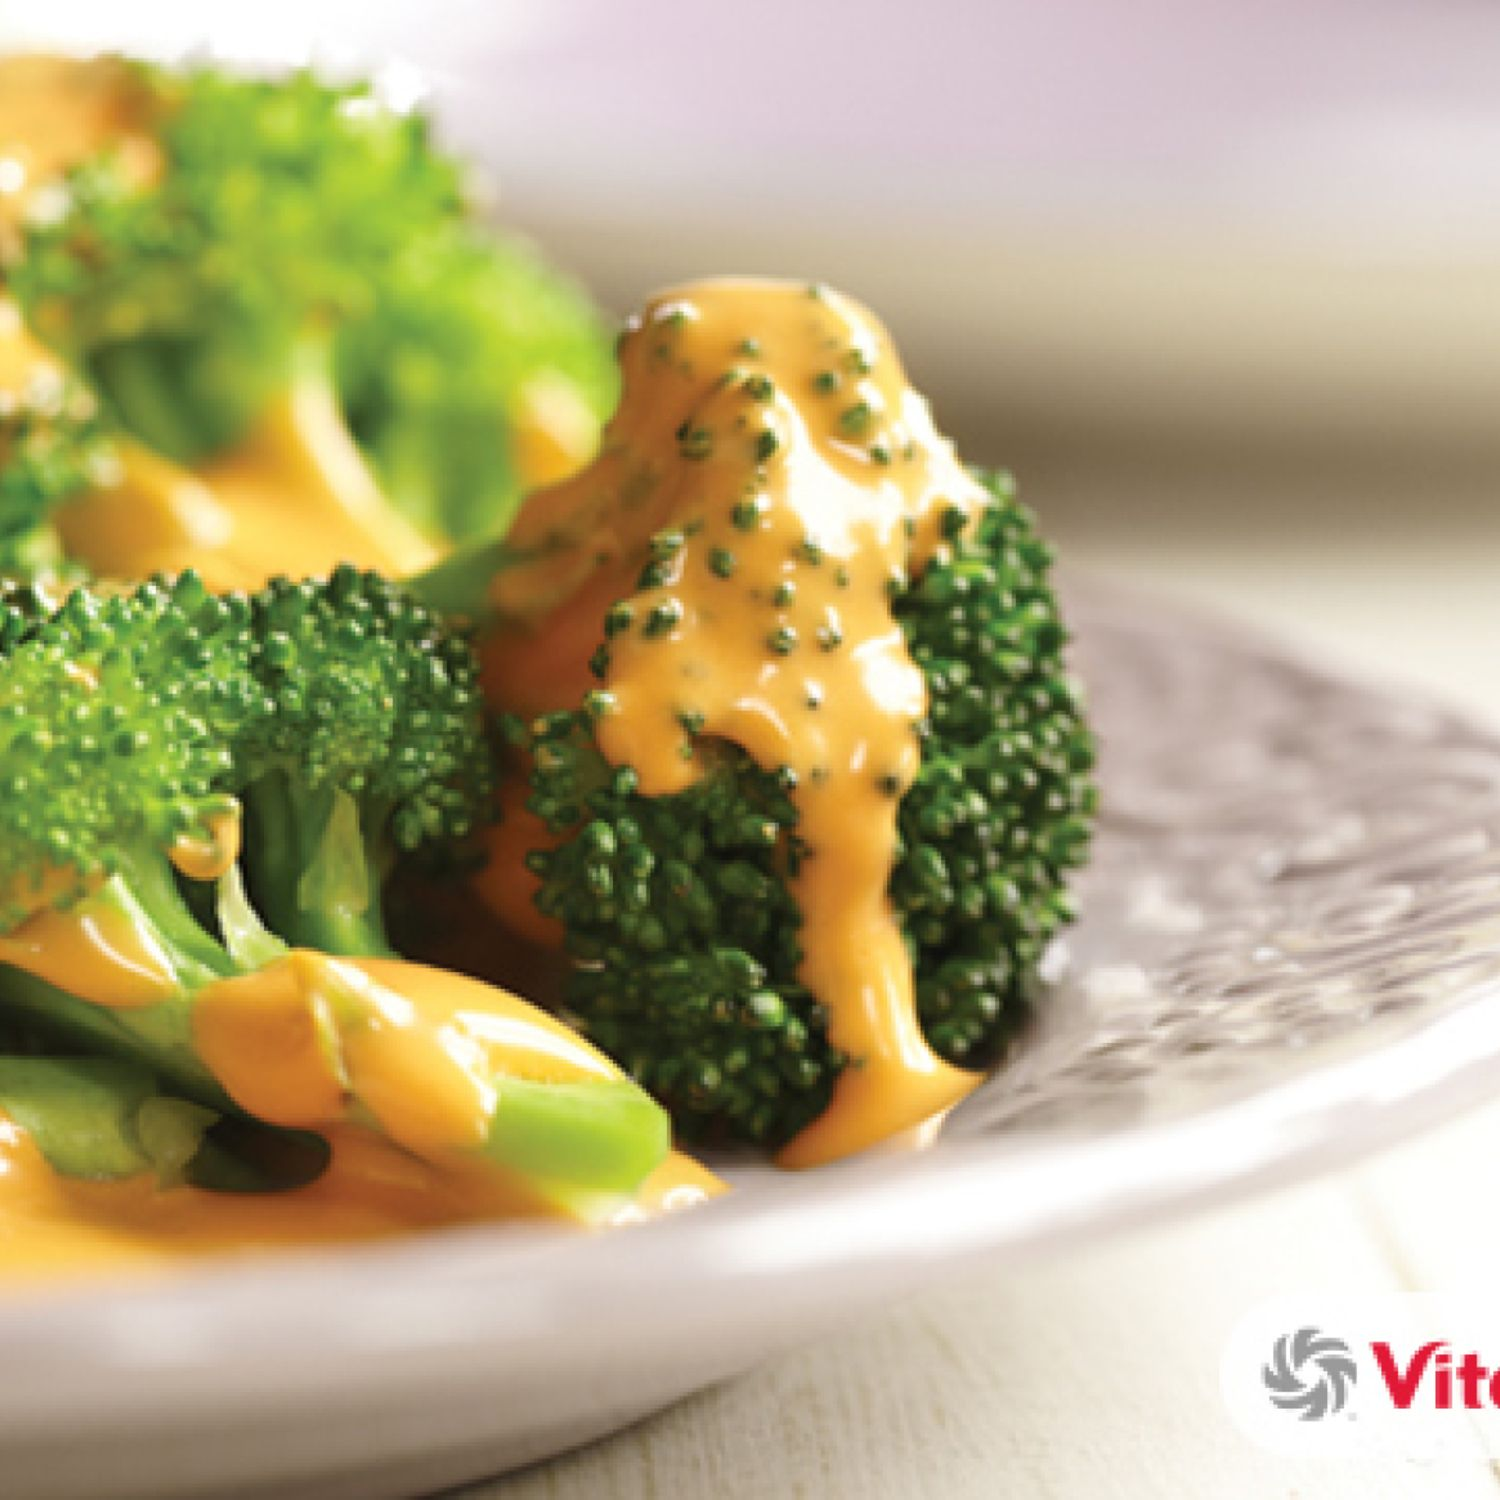 Vitamix Vegan Not So Cheese Sauce Recipe Healthy Blender Recipes Raw Food Recipes Sauce For Vegetables